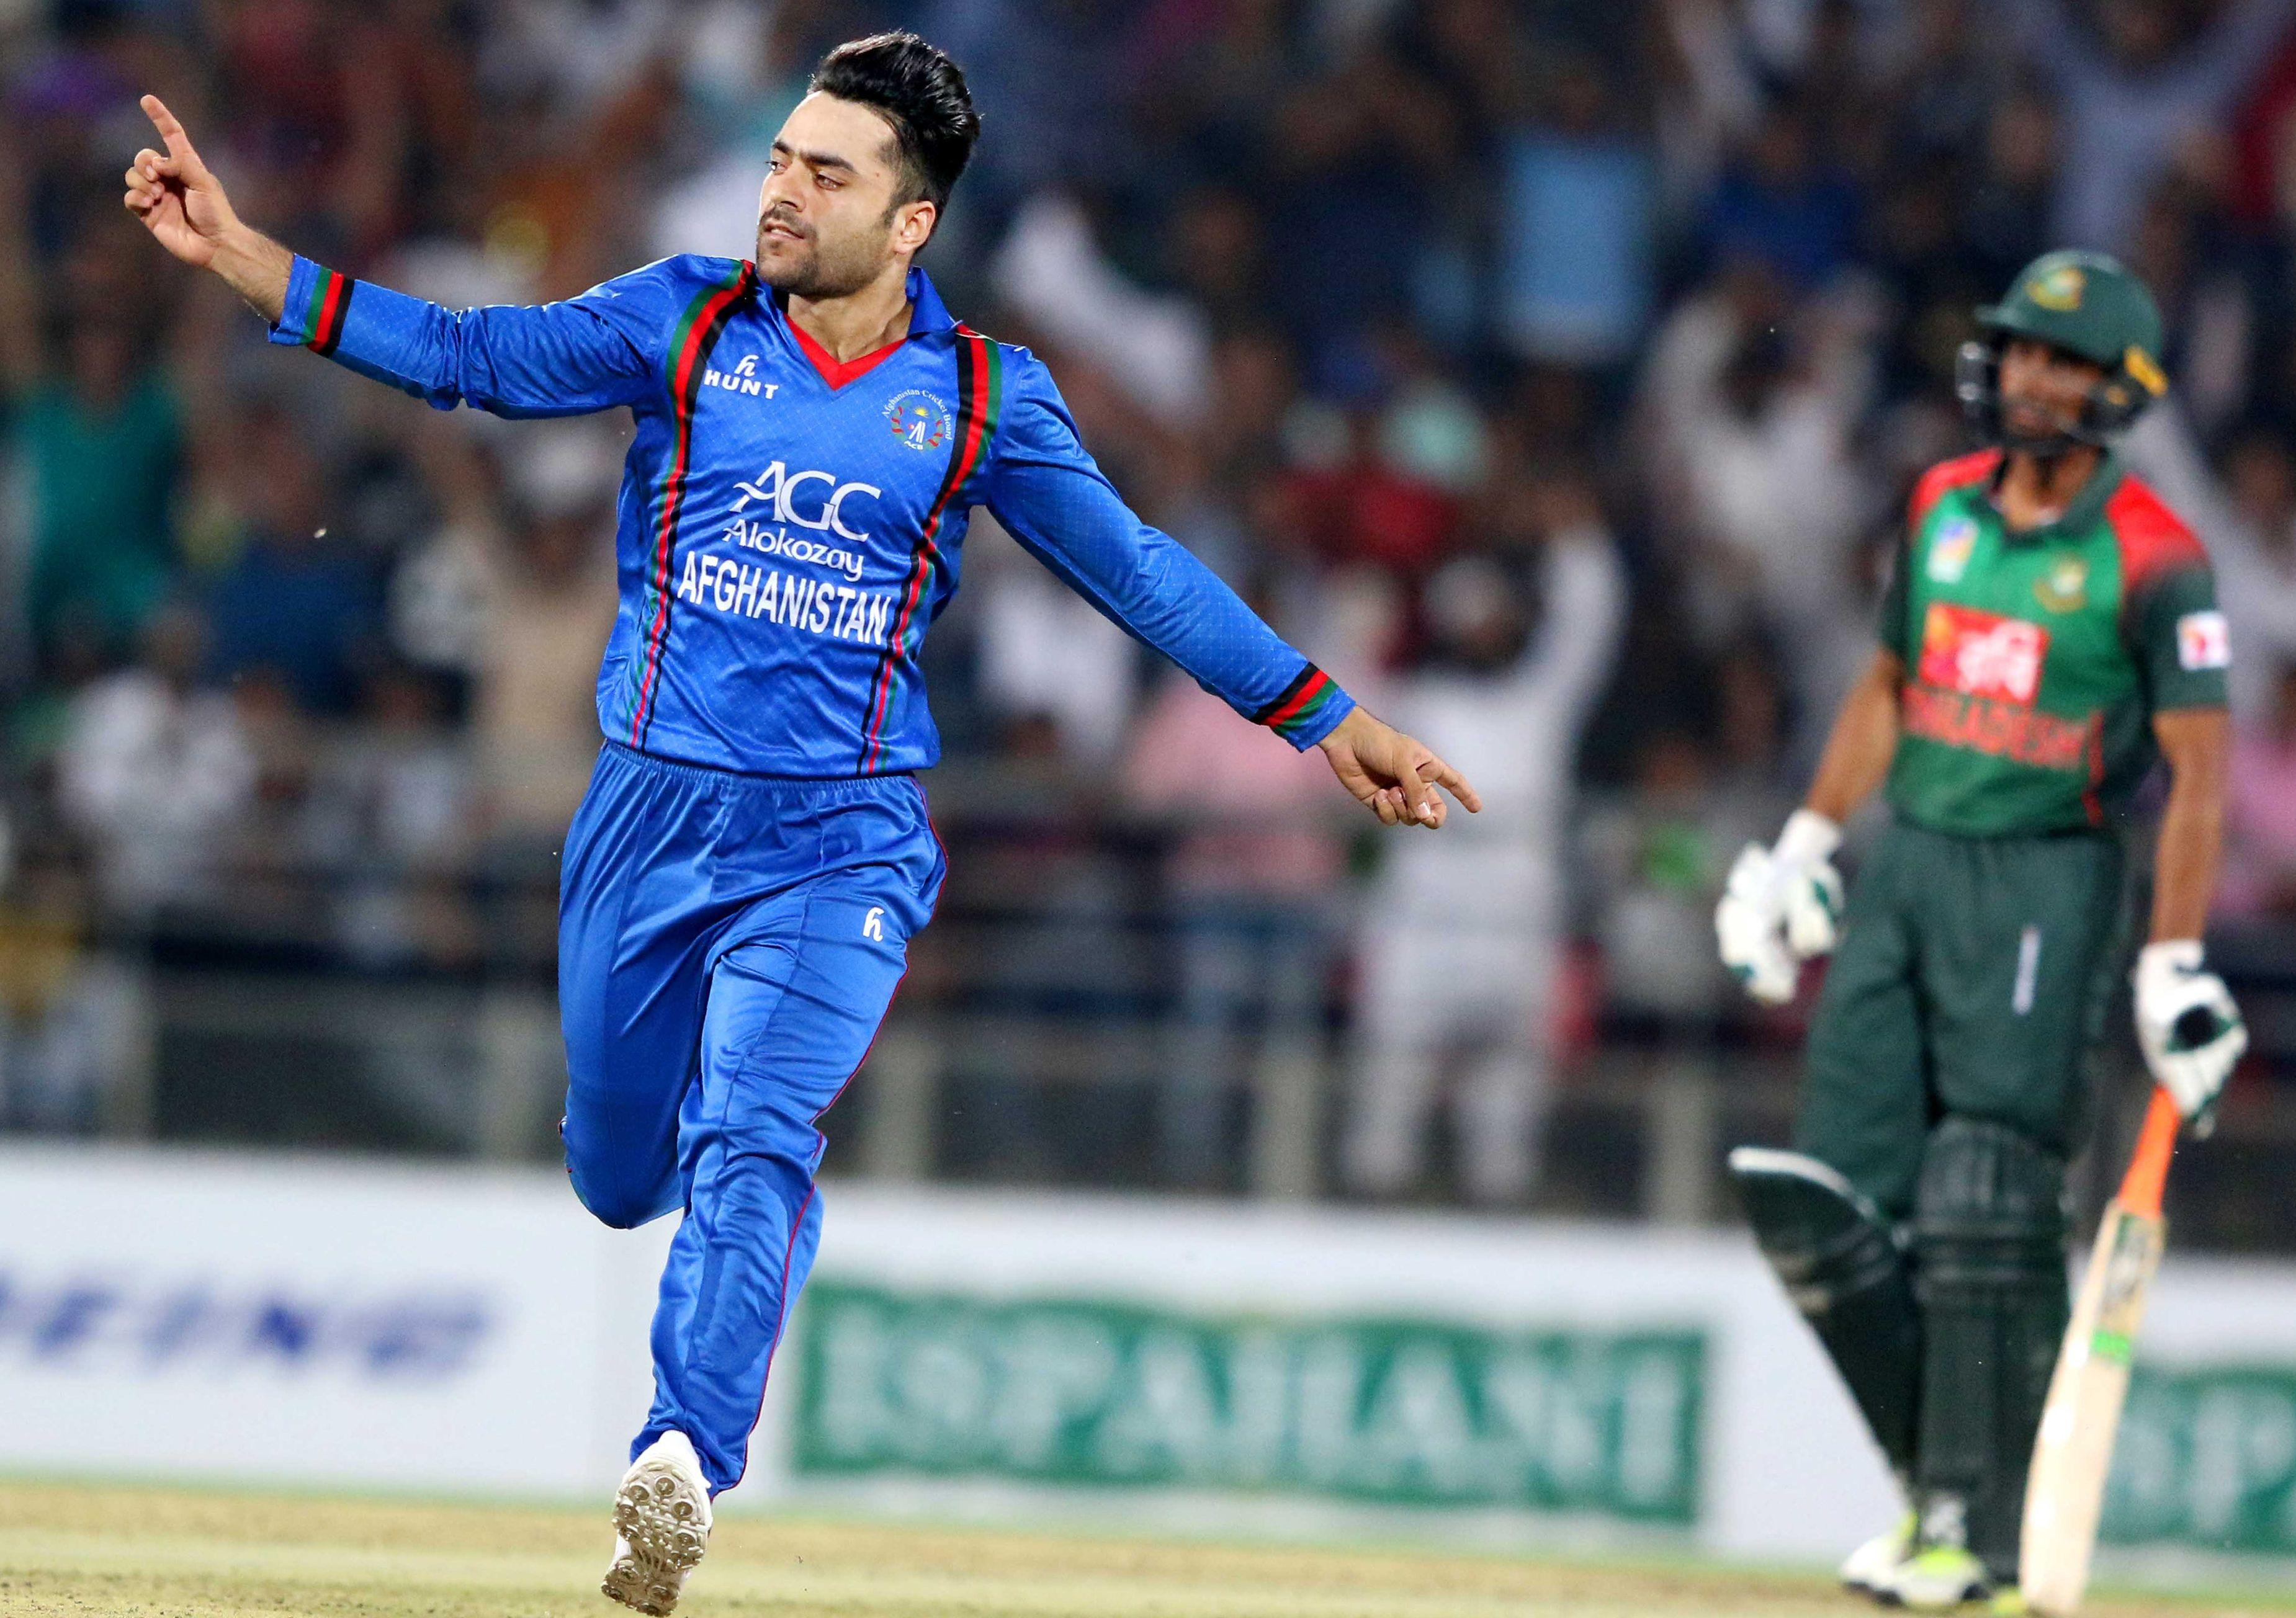 Rashid Khan and Afghanistan play their first ever Test match this week